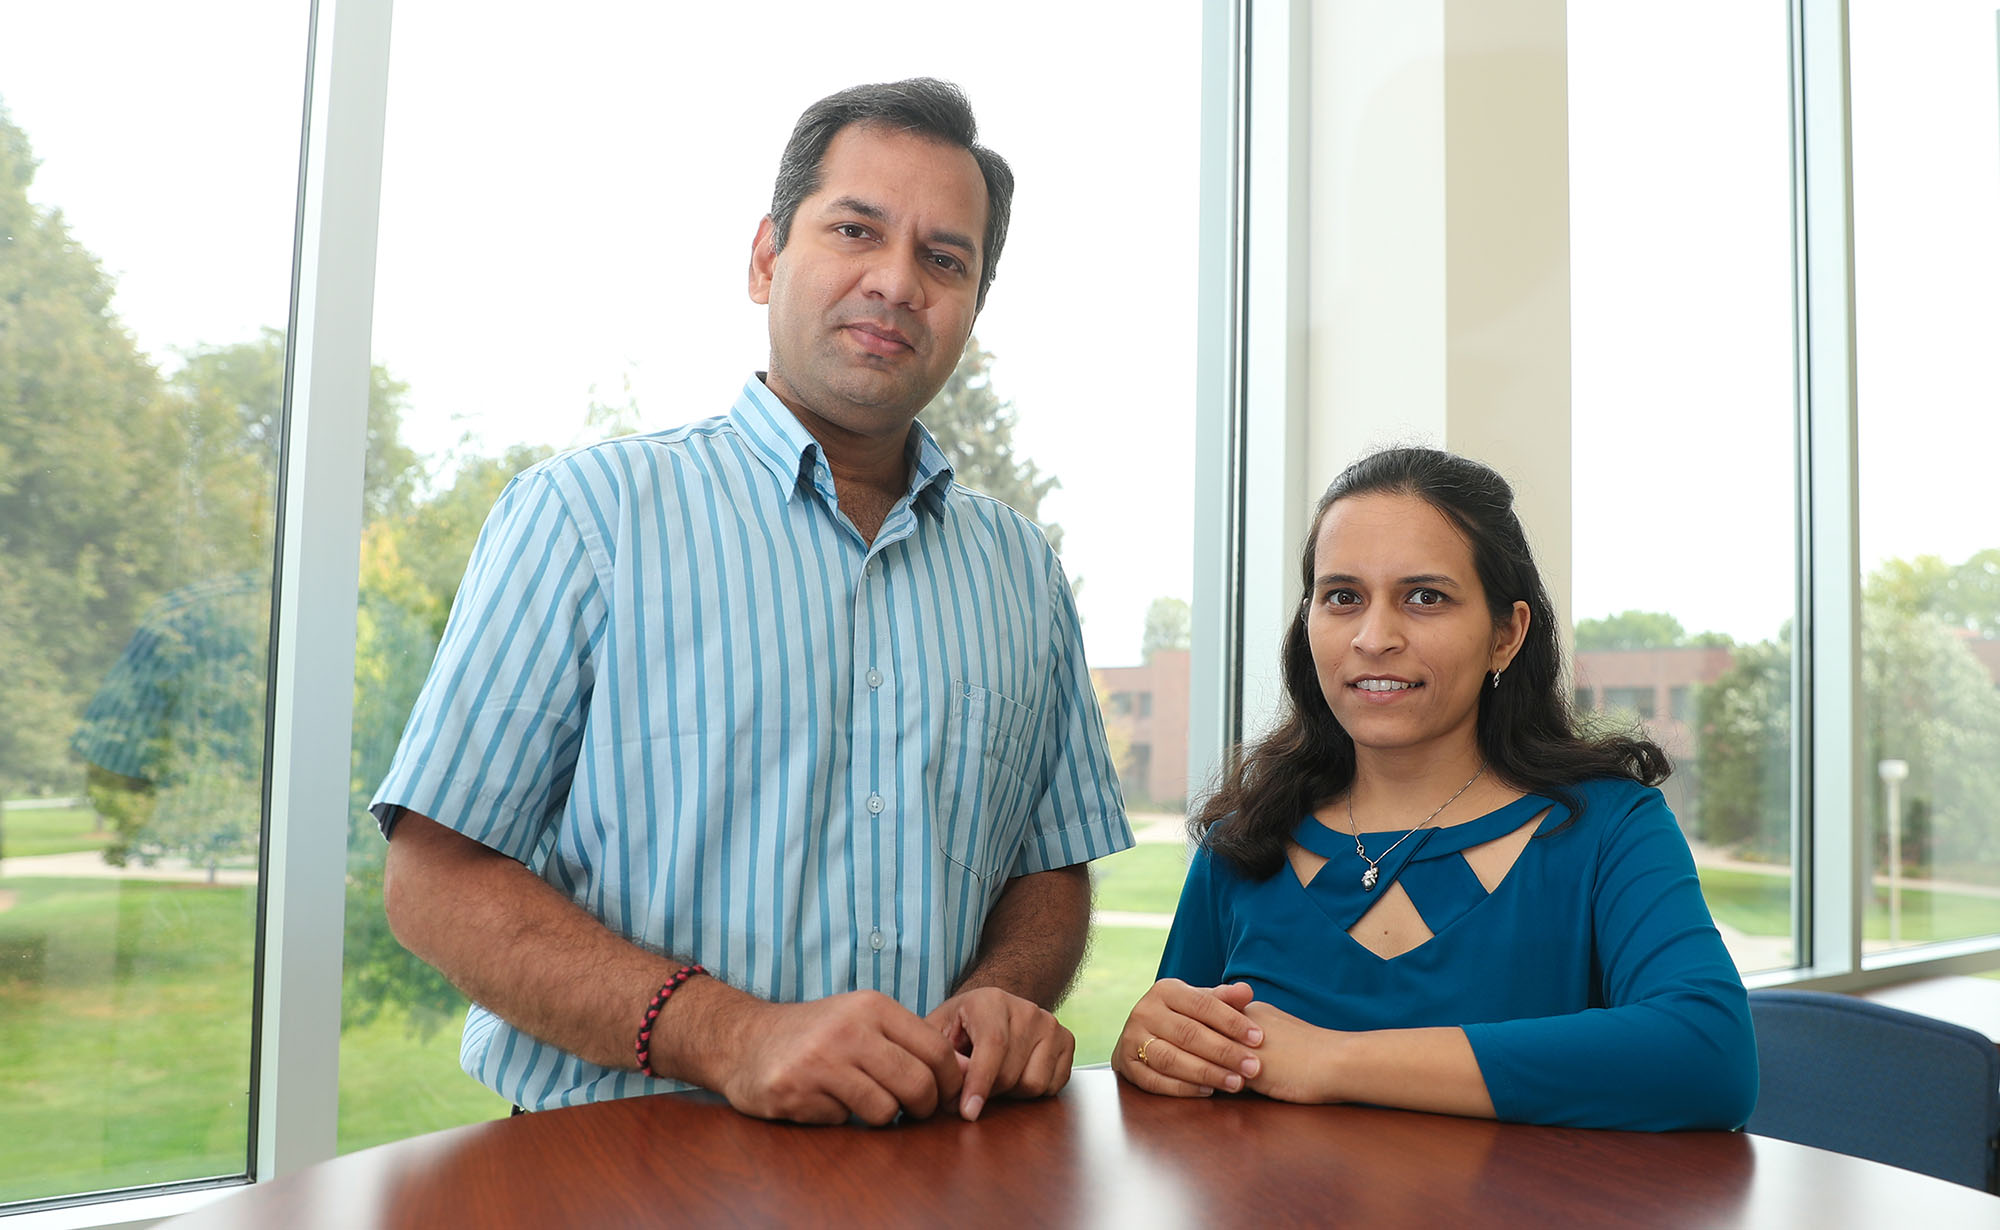 UNK researchers Mahesh Pattabiraman, left, and Surabhi Chandra are trying to develop a painkiller that's as effective as opioids, without the risk of addiction. (Photos by Corbey R. Dorsey, UNK Communications)